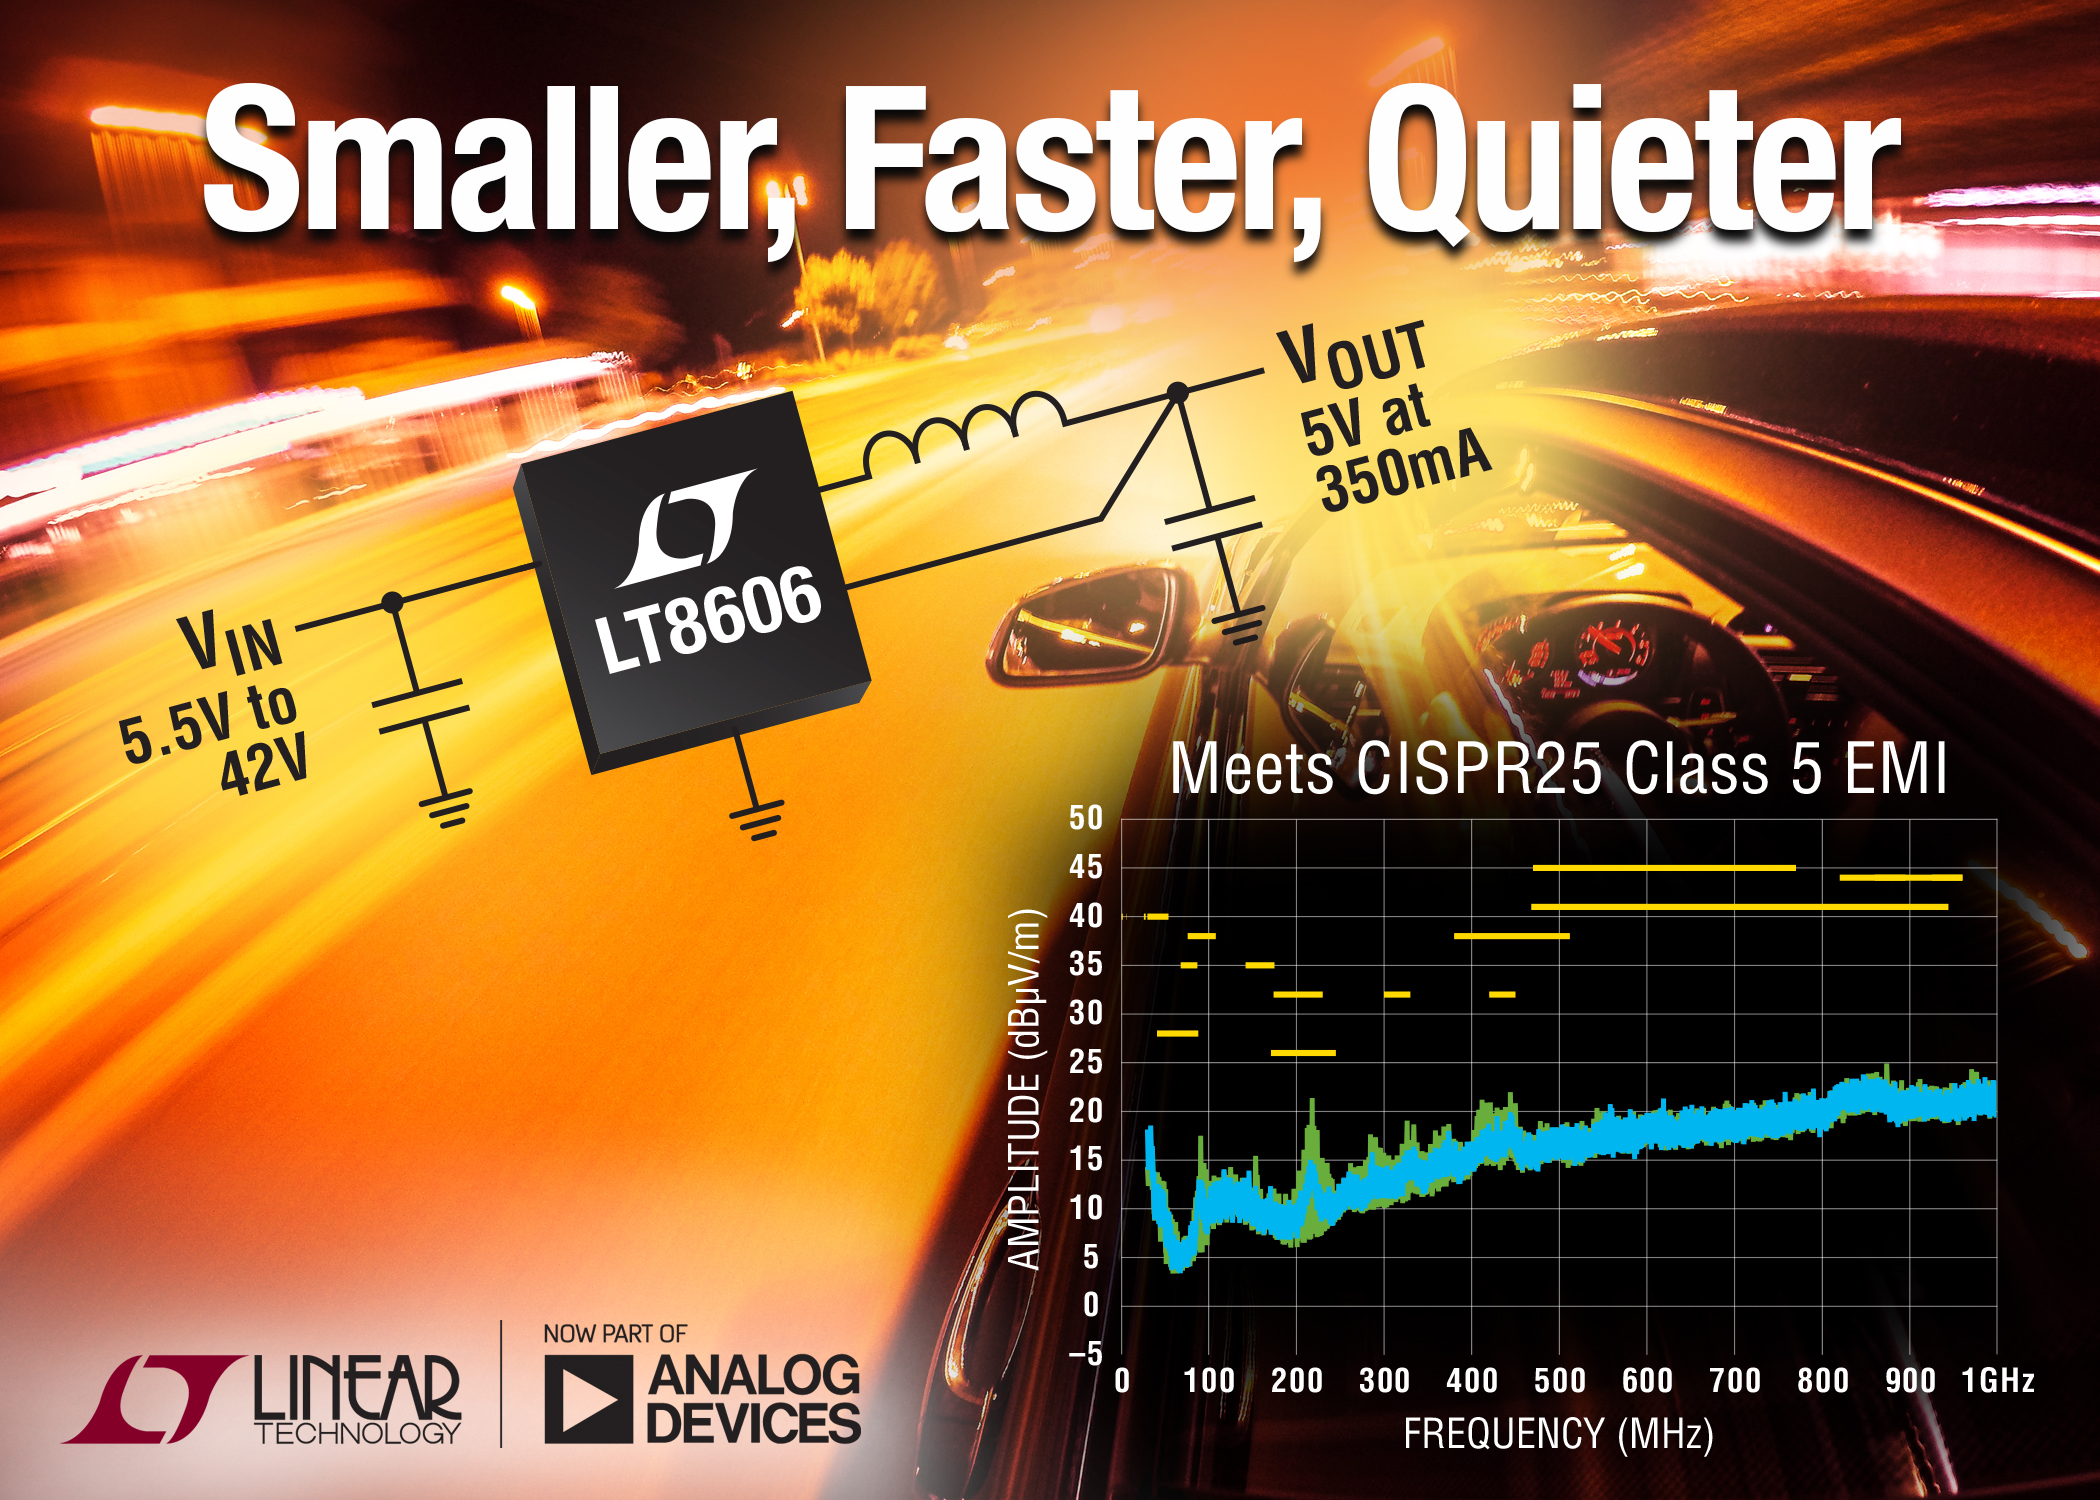 DC/DC Converter Delivers 92% Efficiency at 2MHz & Operates from 3.0V to 42V Inputs